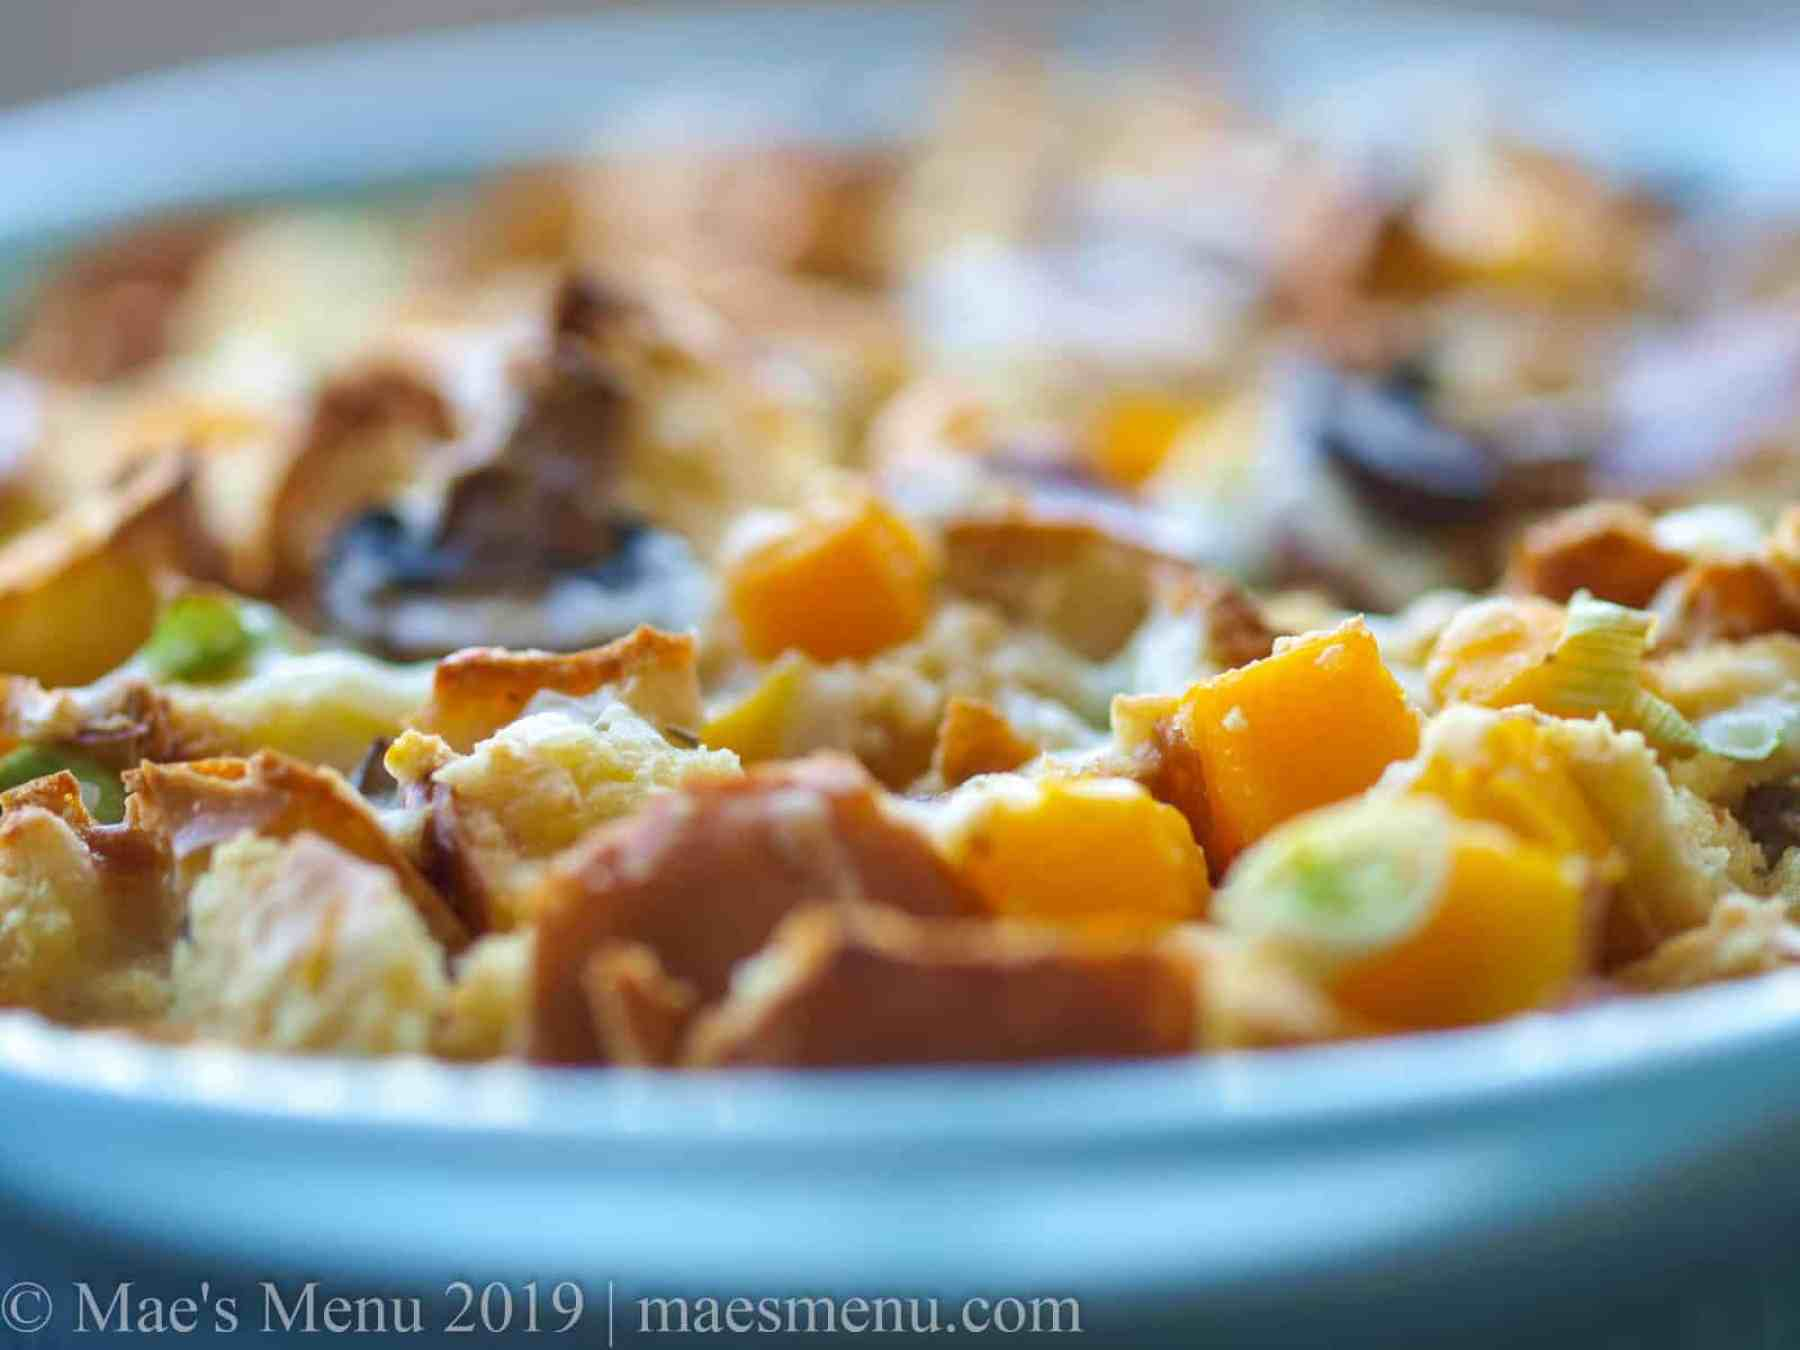 A side view of a crusty savory bread pudding.